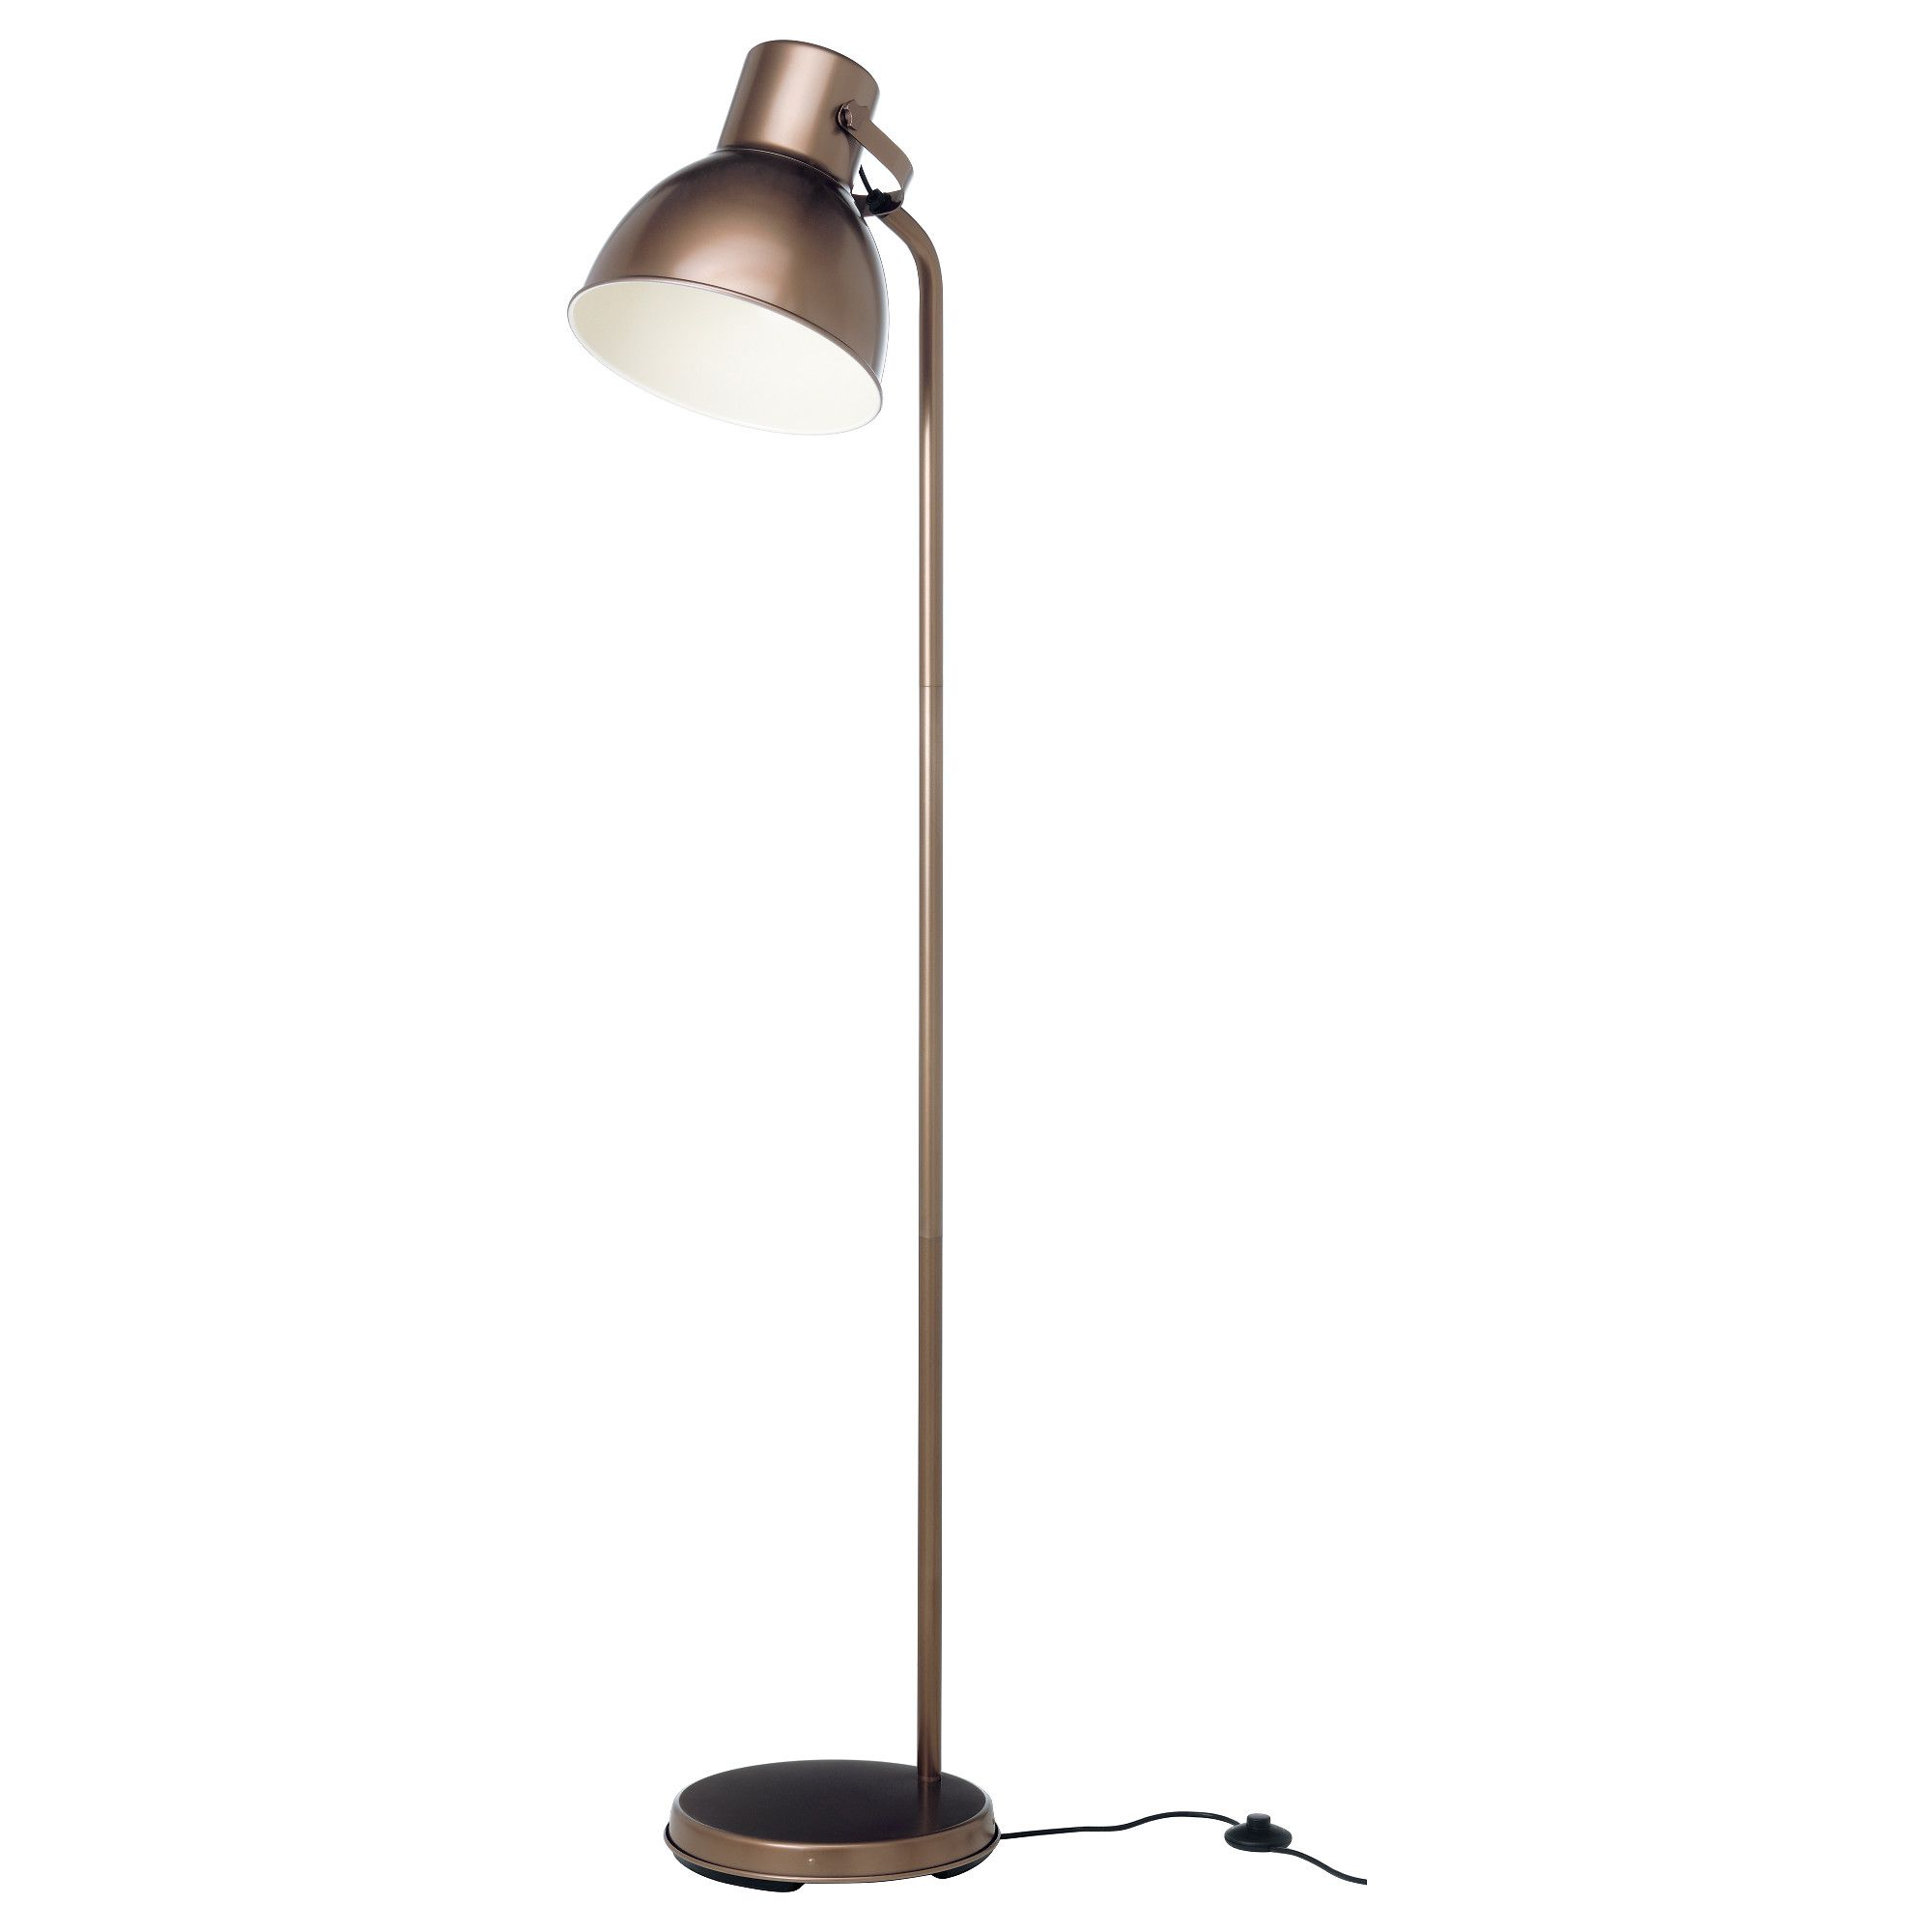 ikea floor lighting. IKEA Hektar Floor Lamp In Bronze. PS This Is A Good Example Of Something I Could Buy, If You Don\u0027t Find Love, Can Buy One And Just Ikea Lighting F